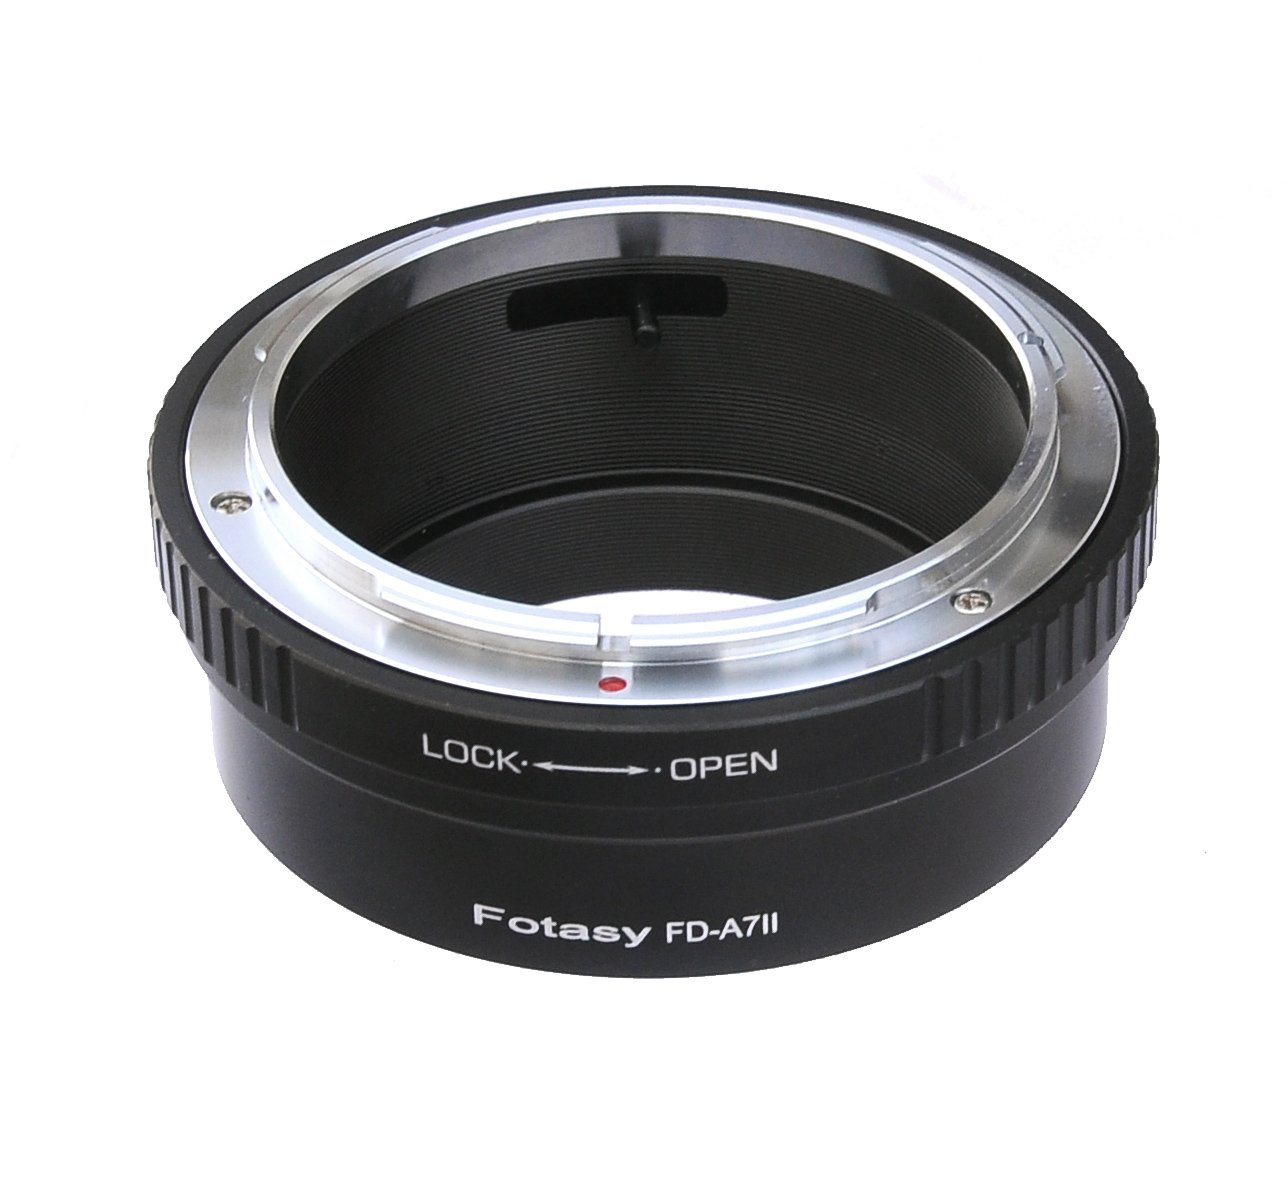 Fotasy Canon FD Lens to Sony A7II A7m2 A7S II A7R II Full Frame Mirrorless Camera Adapter by Fotasy